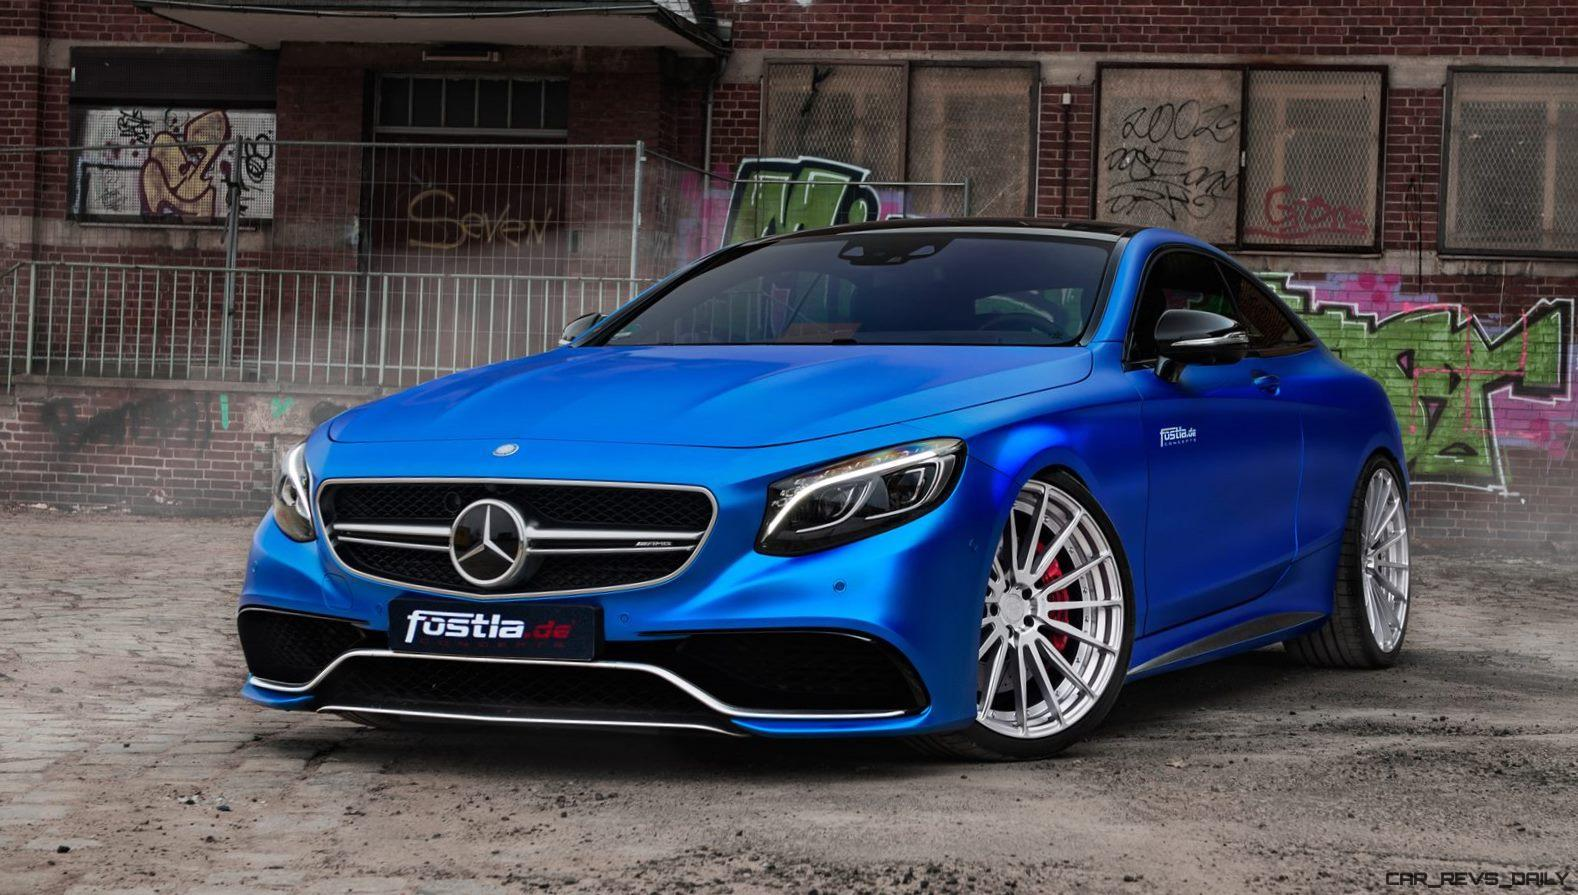 2017 Mercedes-AMG S63 Coupe By FOSTLA.de Is Dripping Blue ...